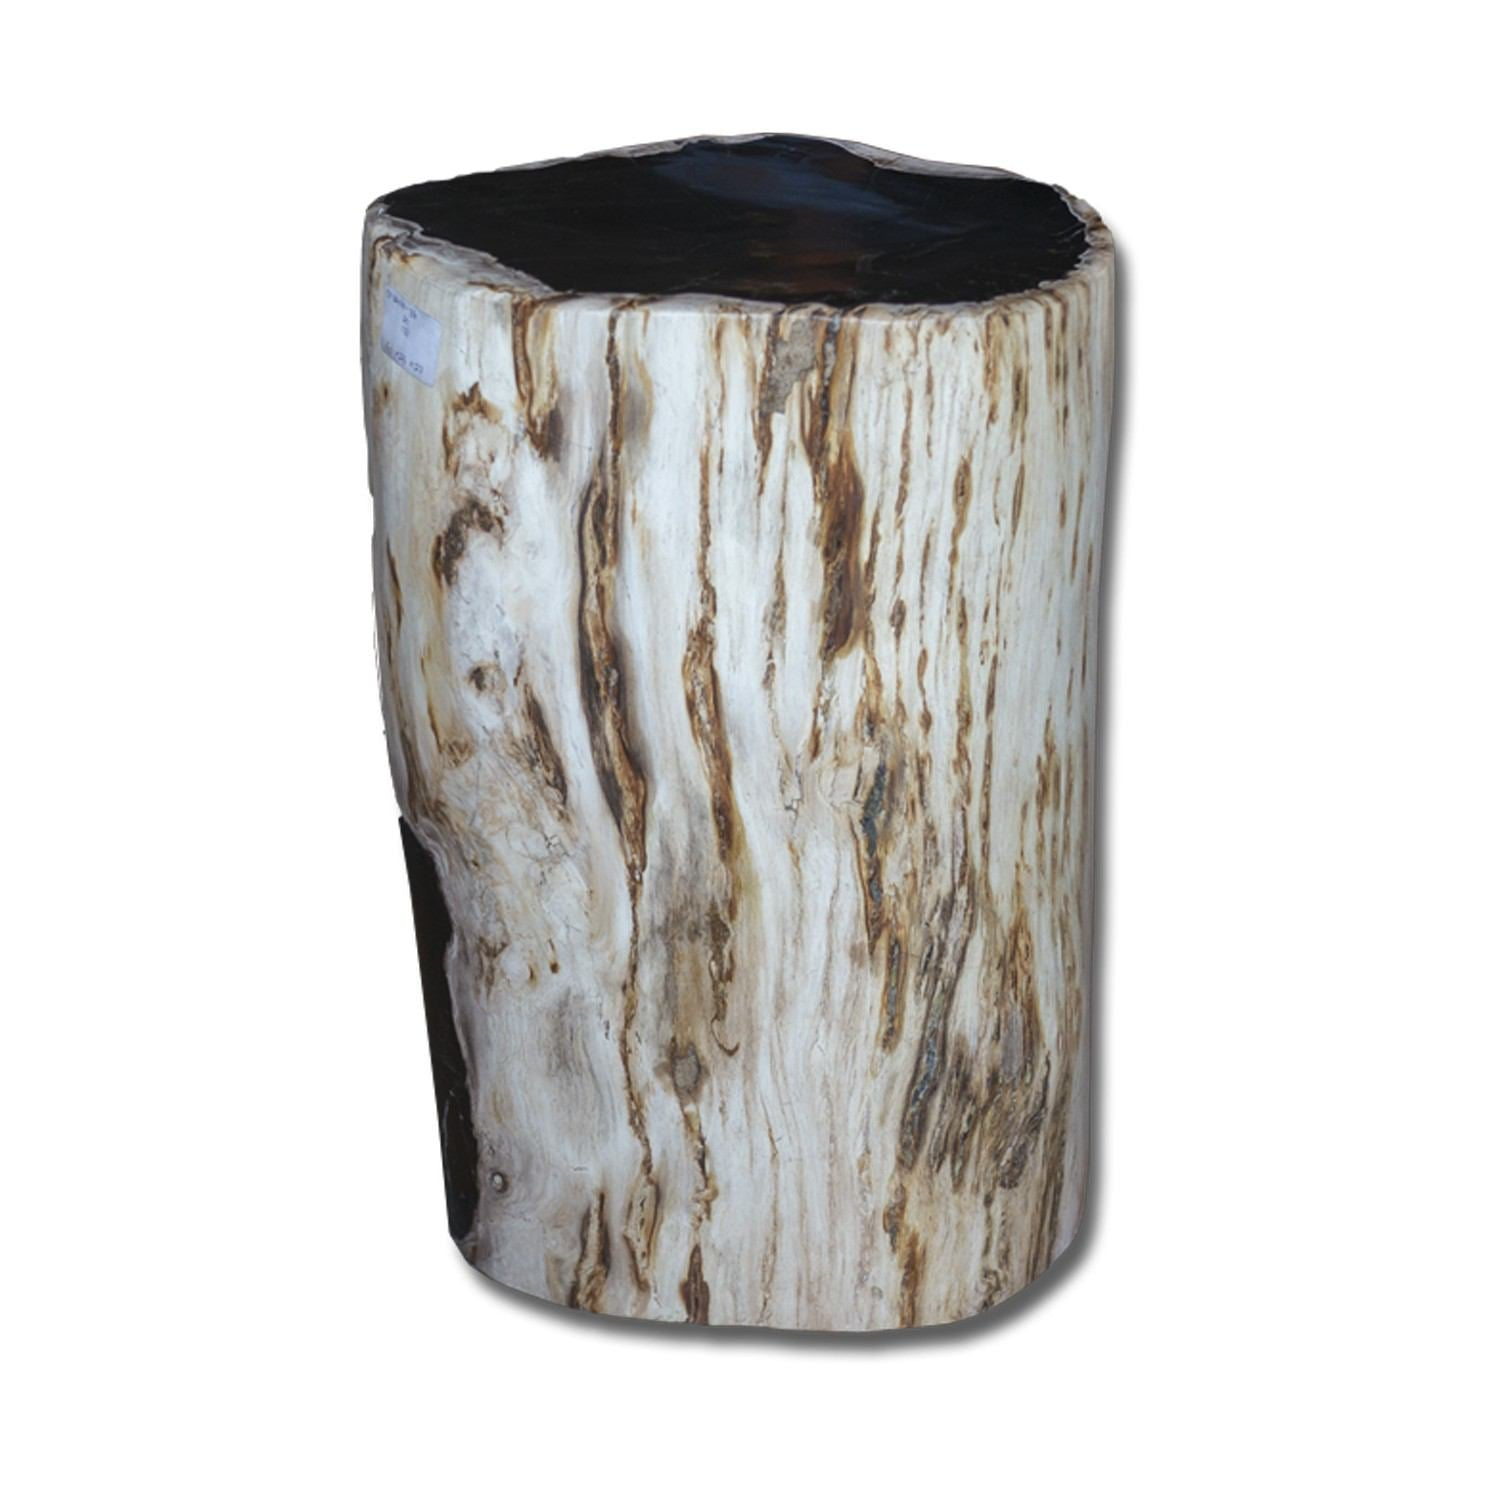 PF-2160 Petrified Wood Stool by AIRE Furniture